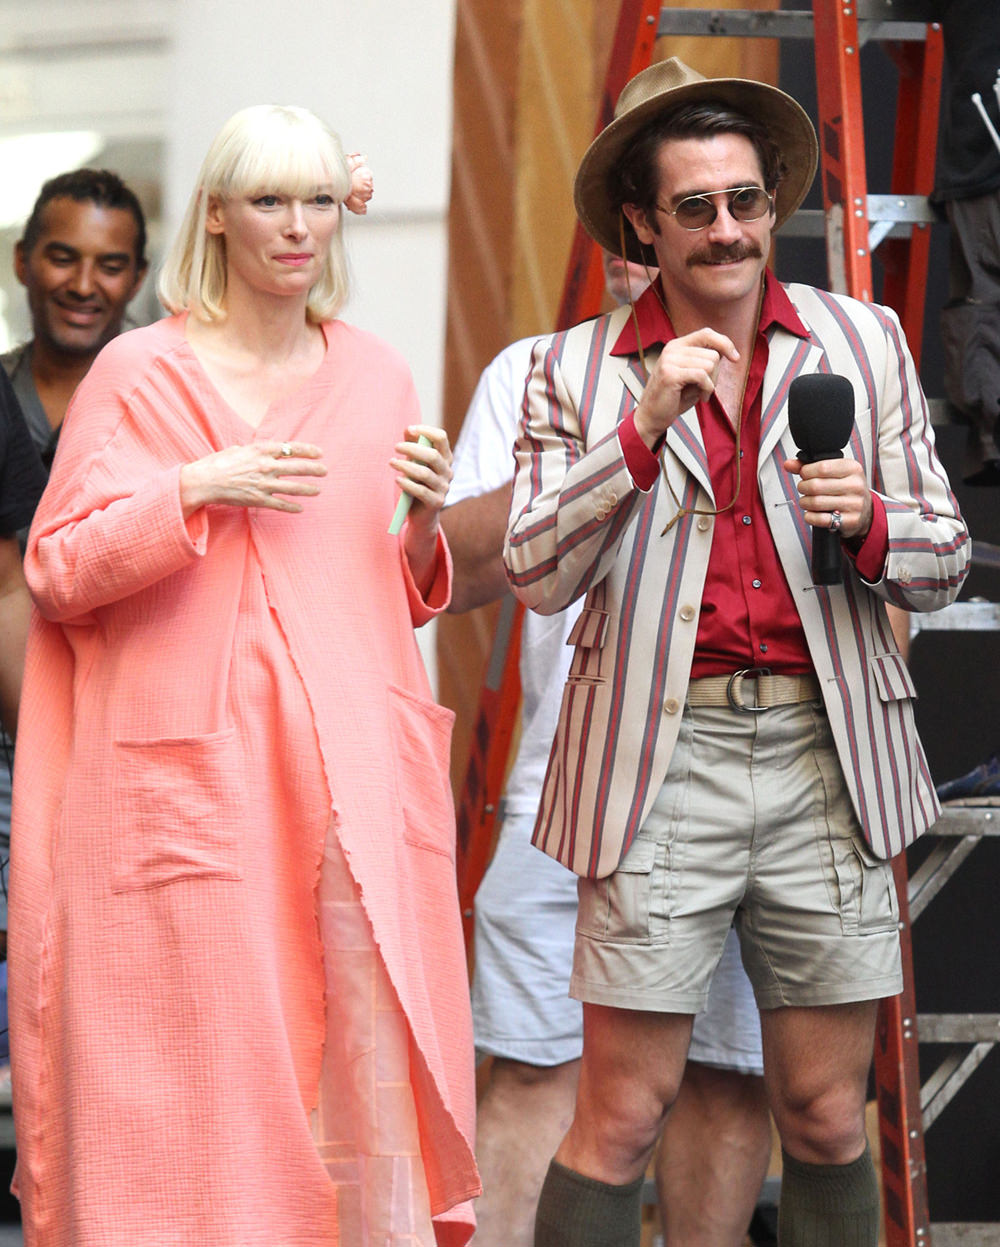 okja_Tilda-Swinton-Jake-Gyllenhaal-Movie-Set-Netflix-Okja-Tom-Lorenzo-Site-1